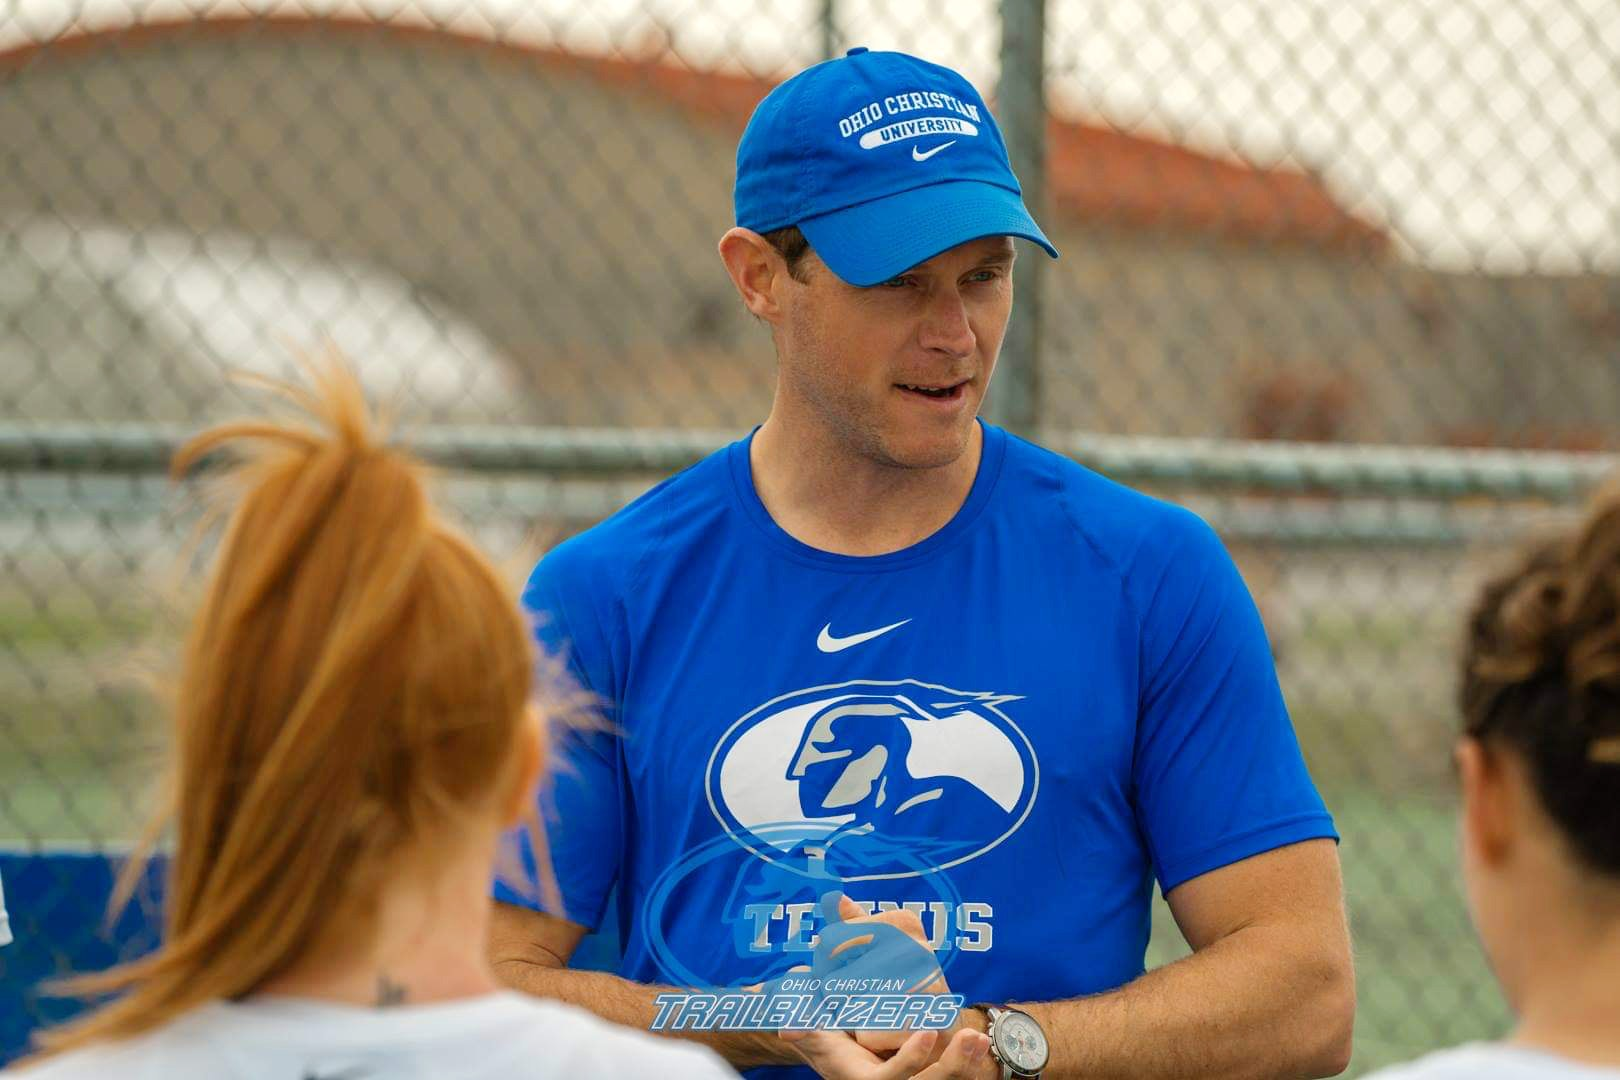 Coach B. teaches tennis lessons in Columbus, OHIO